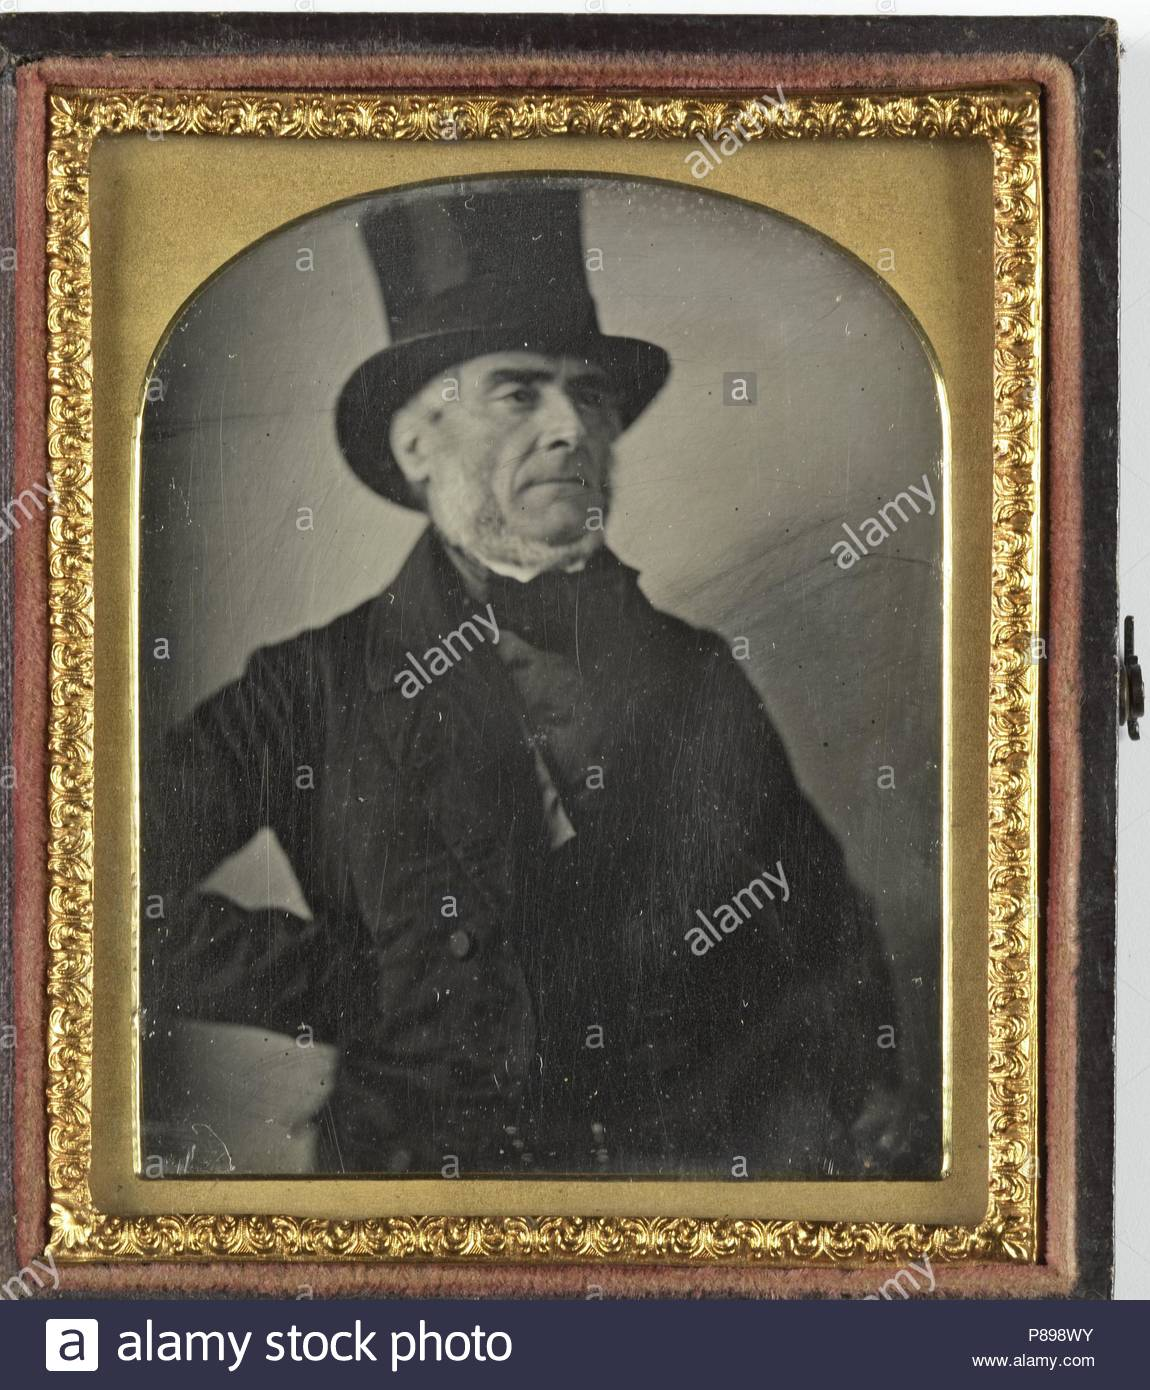 1692d6516d5 Portrait of a man with top hat anonymous stock jpg 1150x1390 1845 hat